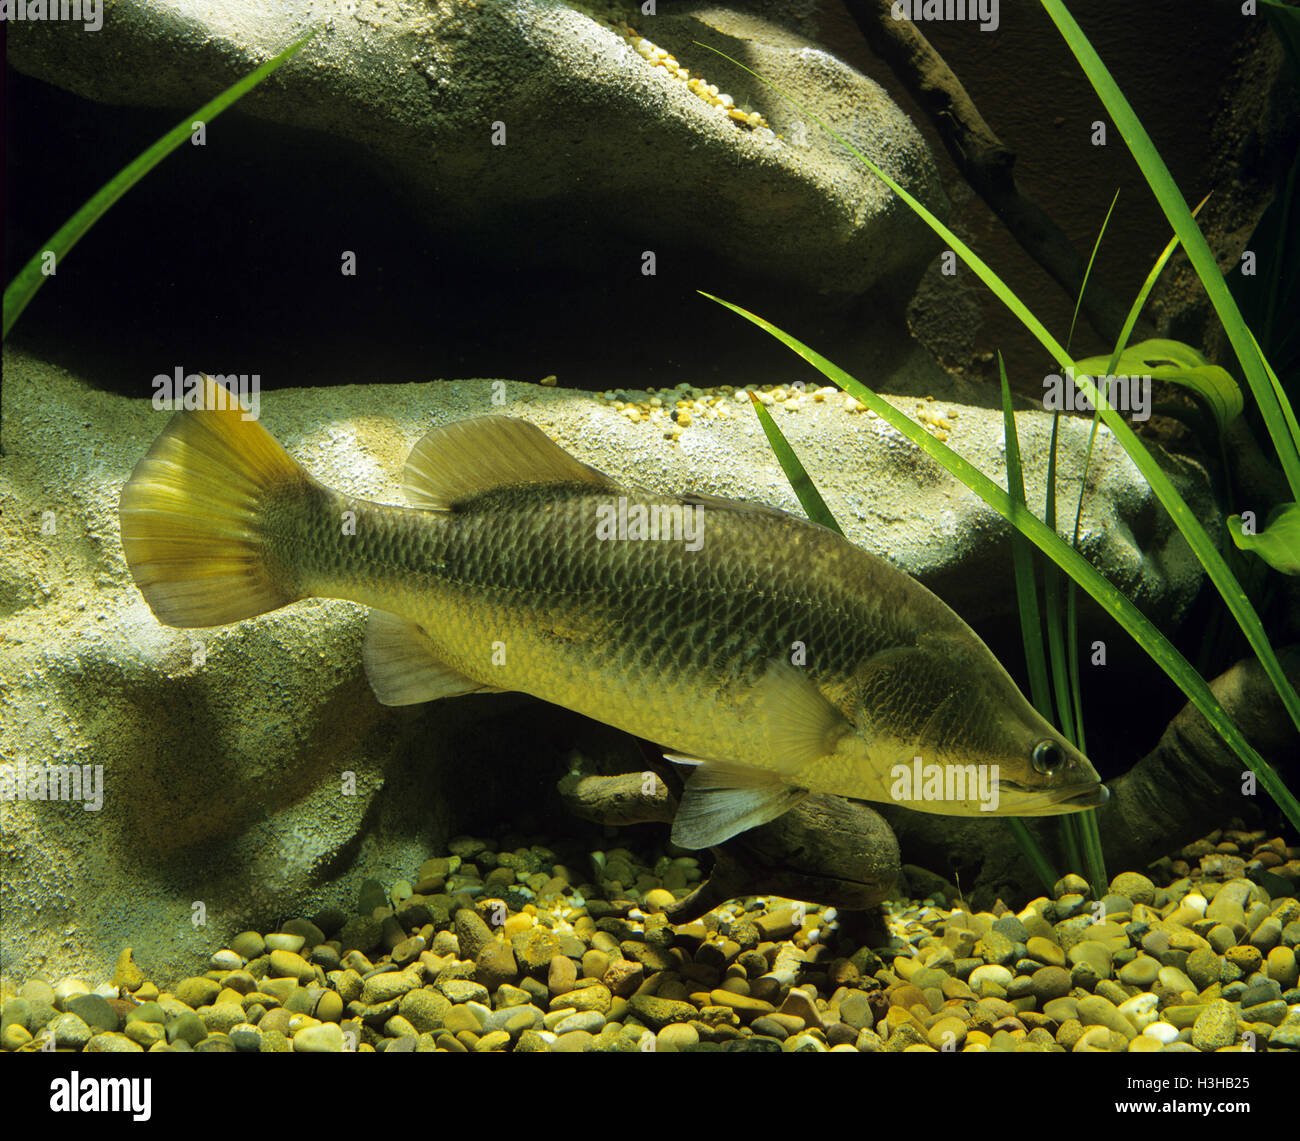 Barramundi (Lates calcarifer) Stock Photo